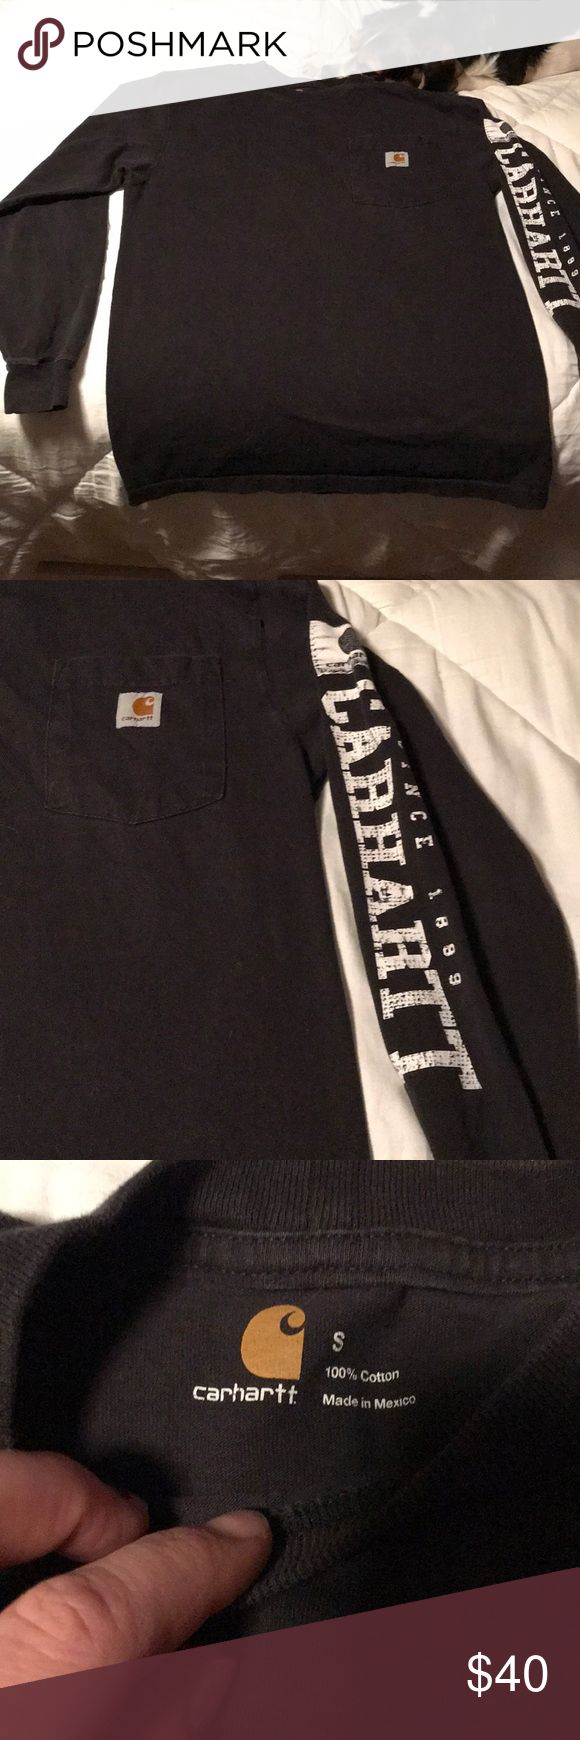 Black long sleeve carhartt shirt Men's small. Can be a woman's small too. Nice and thick. No trades please feel free to make an offer Carhartt Shirts Tees - Long Sleeve